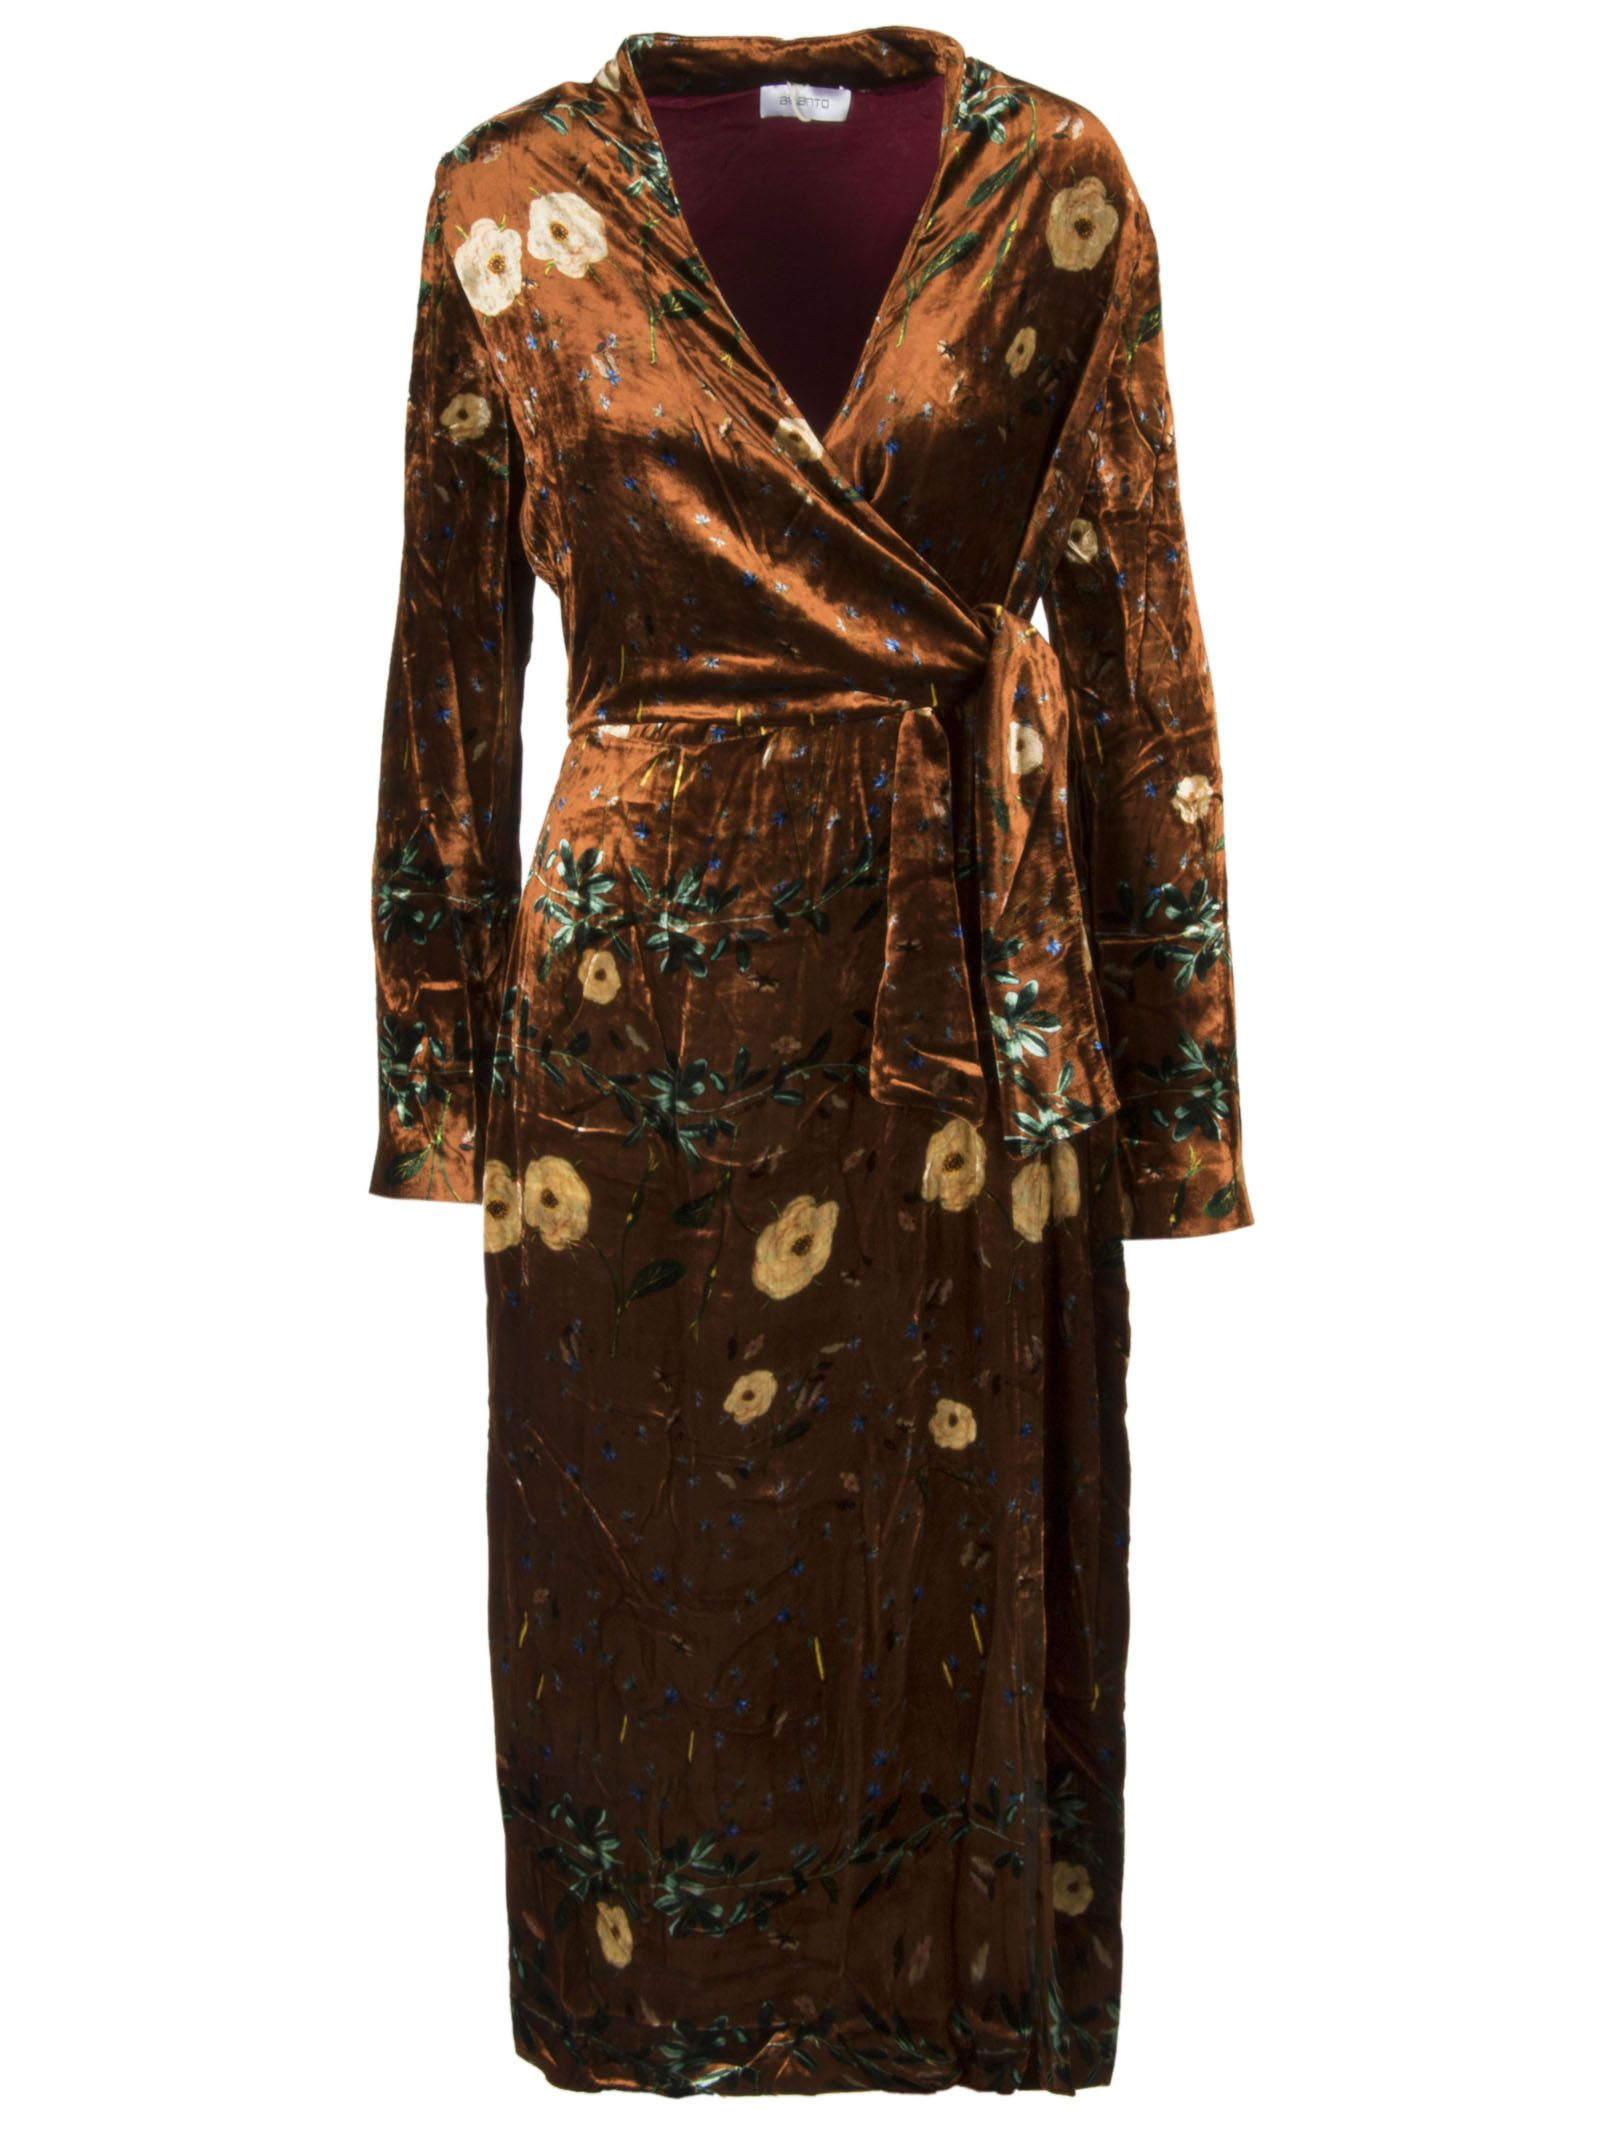 AILANTO Floral Dress in Brown